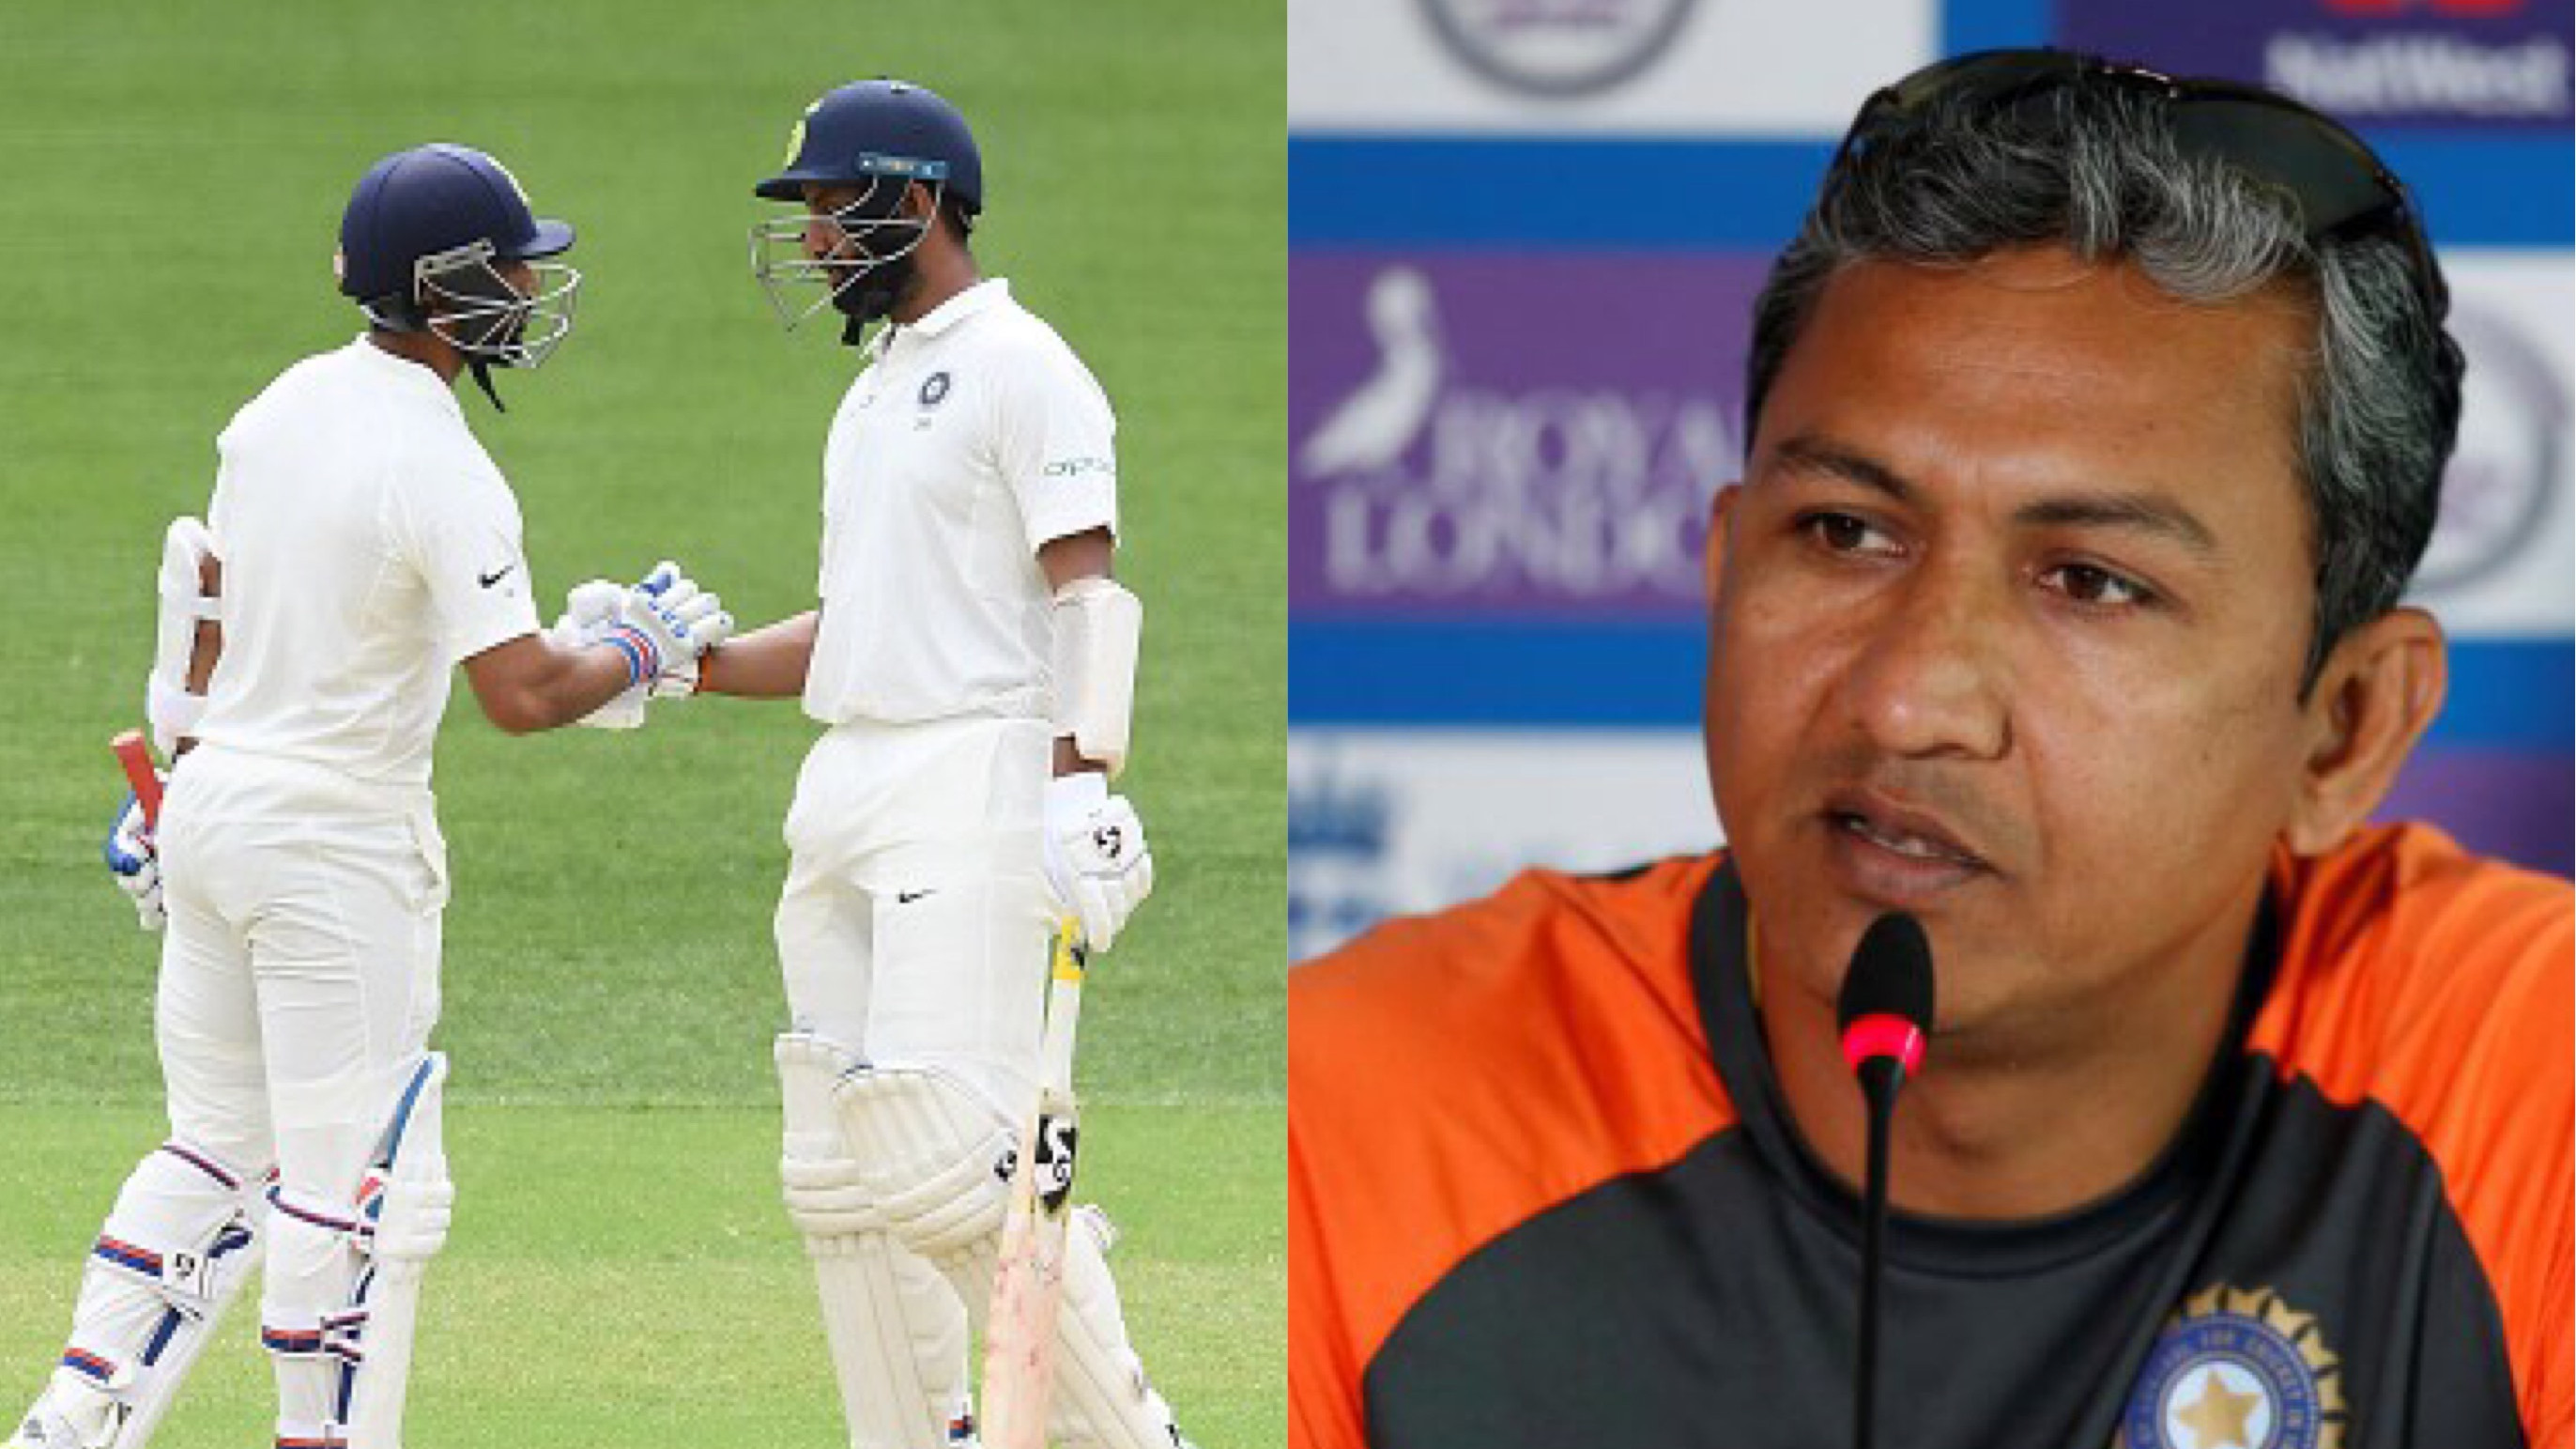 AUS v IND 2018-19: Sanjay Bangar praises innings by Rahane and Pujara, calls them quality players